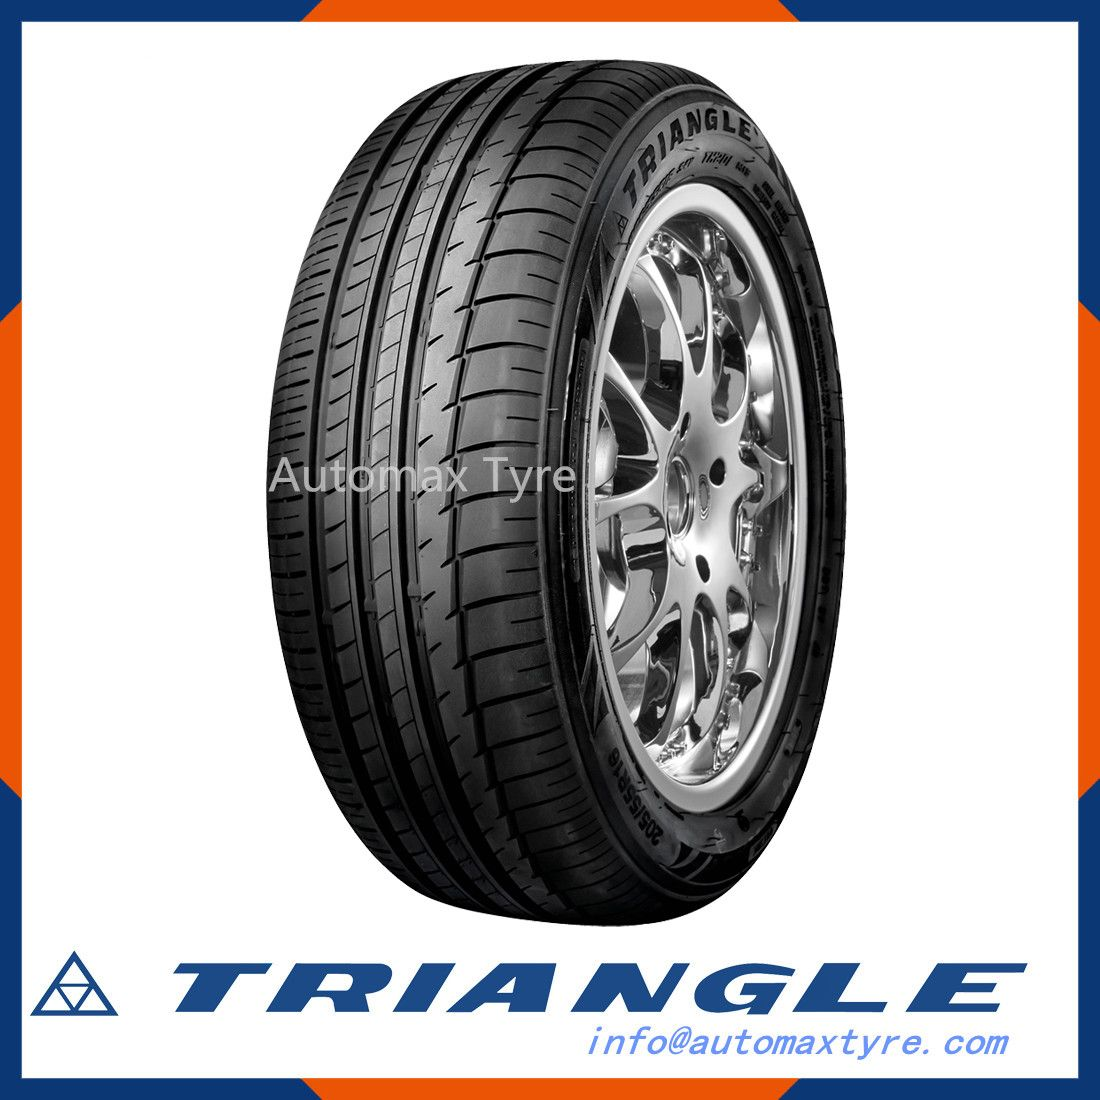 Sport Car Radial Tubeless Tyre With Low Noise 195 45r16 205 50r16 215 48r17 225 55r17 245 45r18 265 35r18 Car Tires Tire Tubeless Tyre